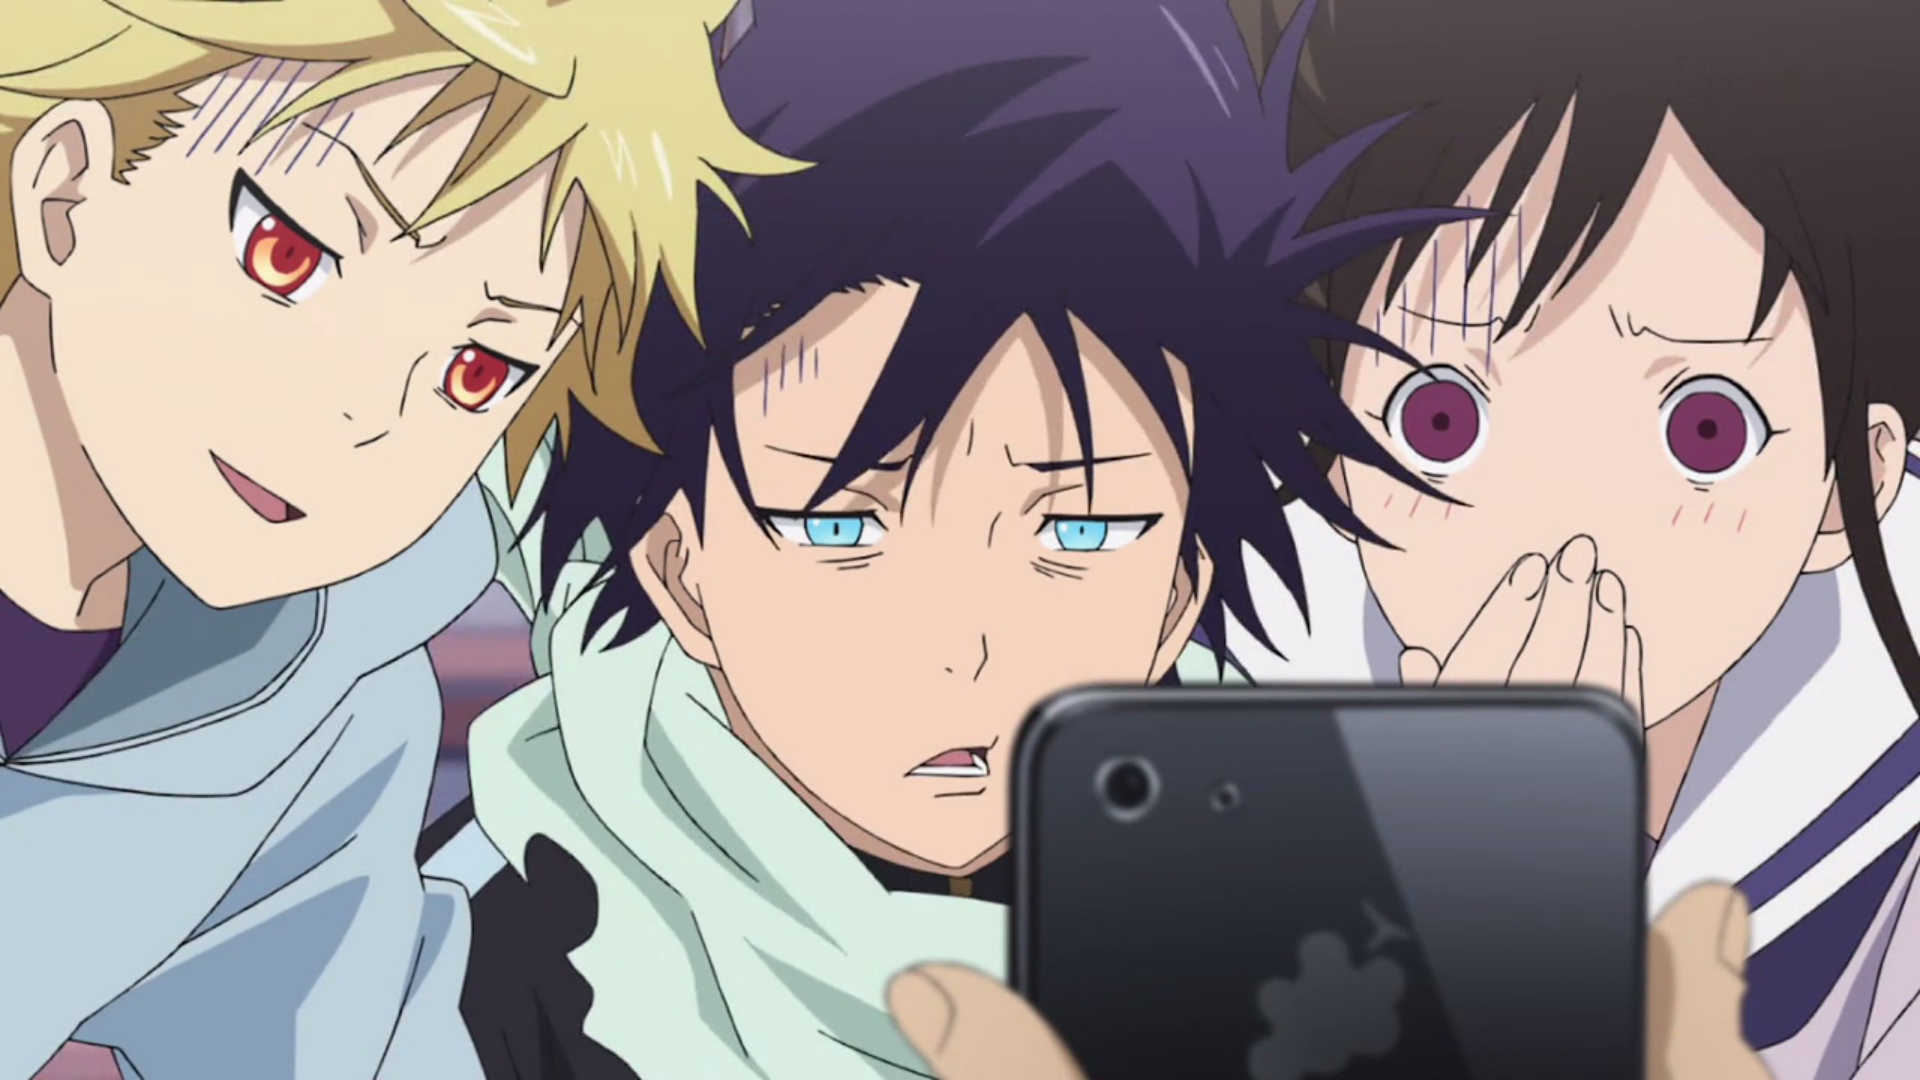 Anime Characters React Fanfiction : Noragami episode wiki fandom powered by wikia